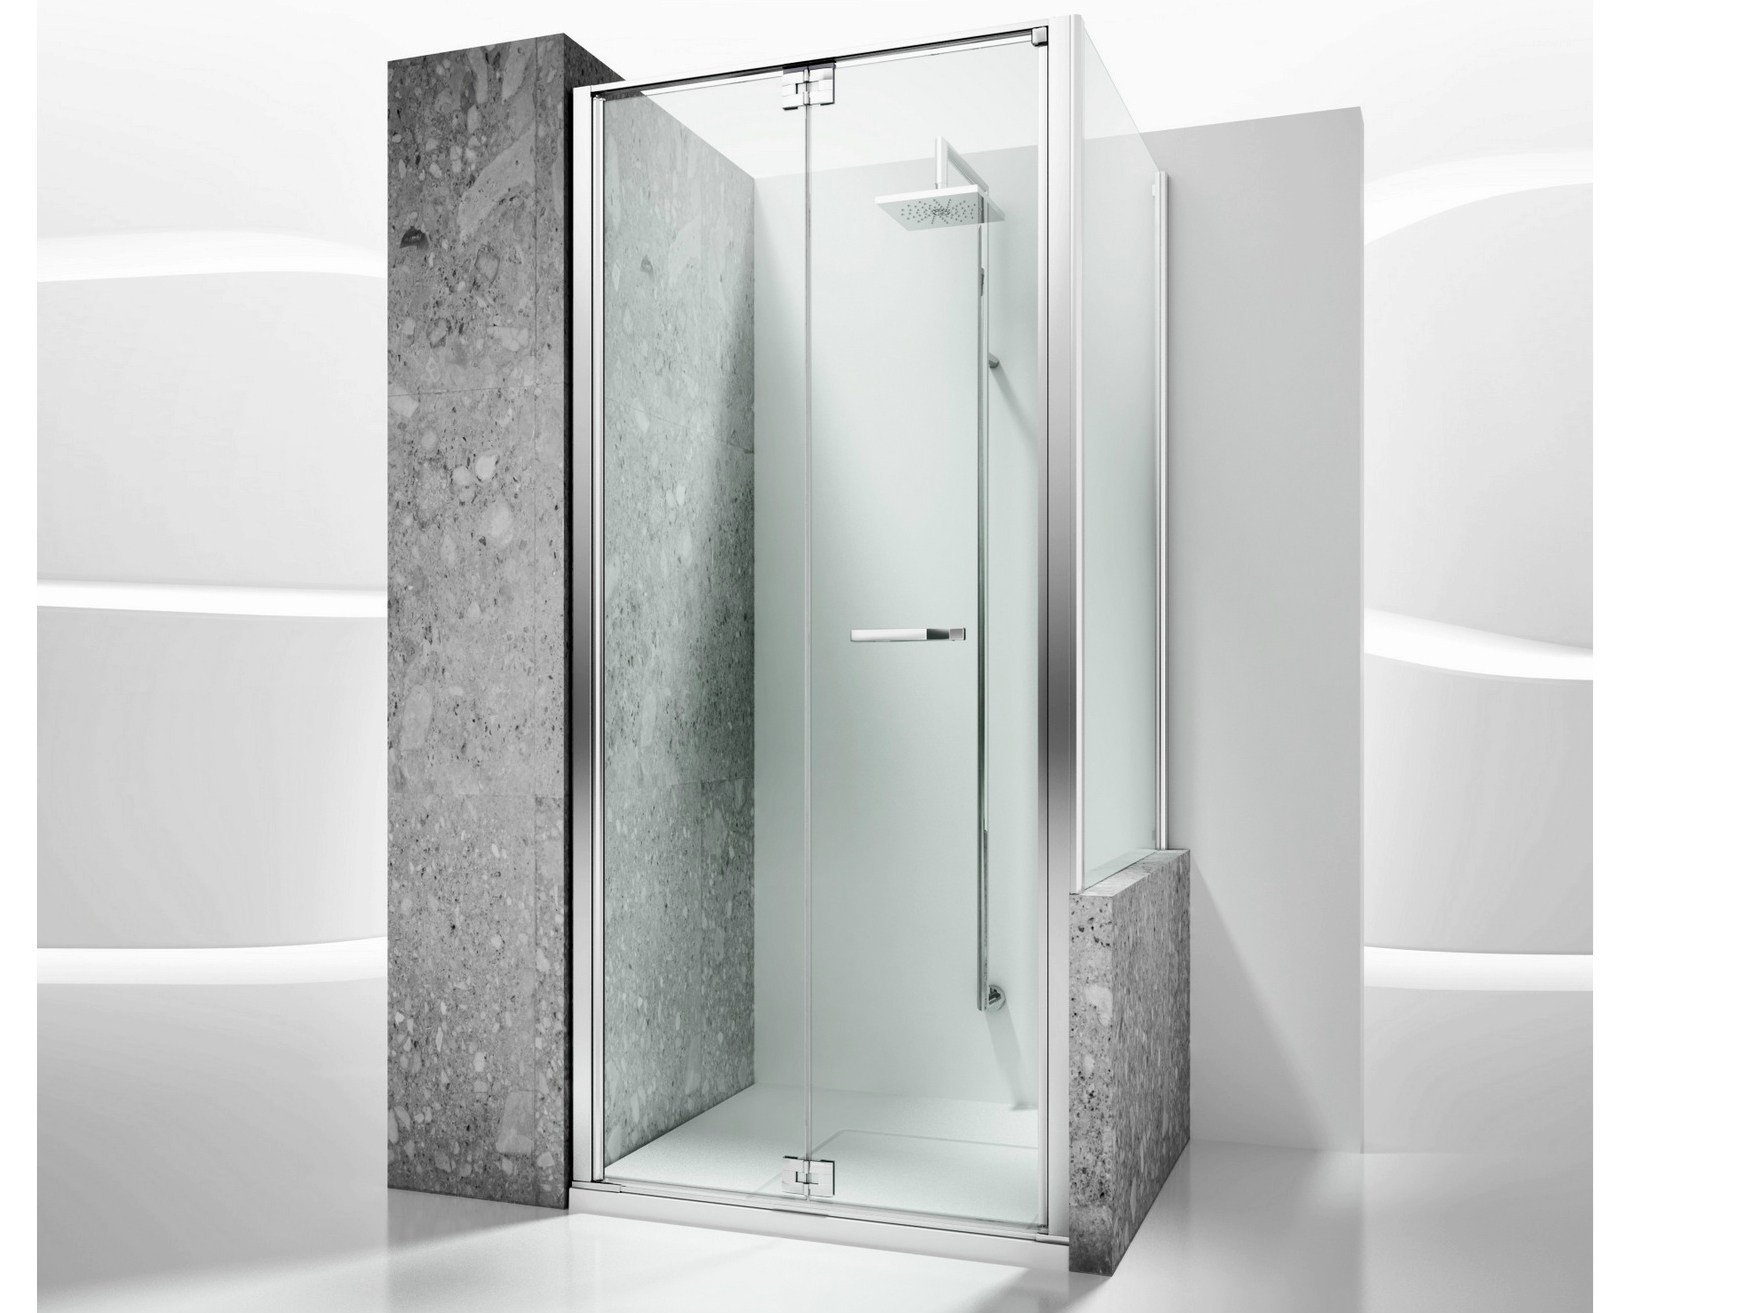 Paroi de douche sur mesure en verre tremp replay rn rv by vismaravetro design centro progetti for Porte de douche sur mesure